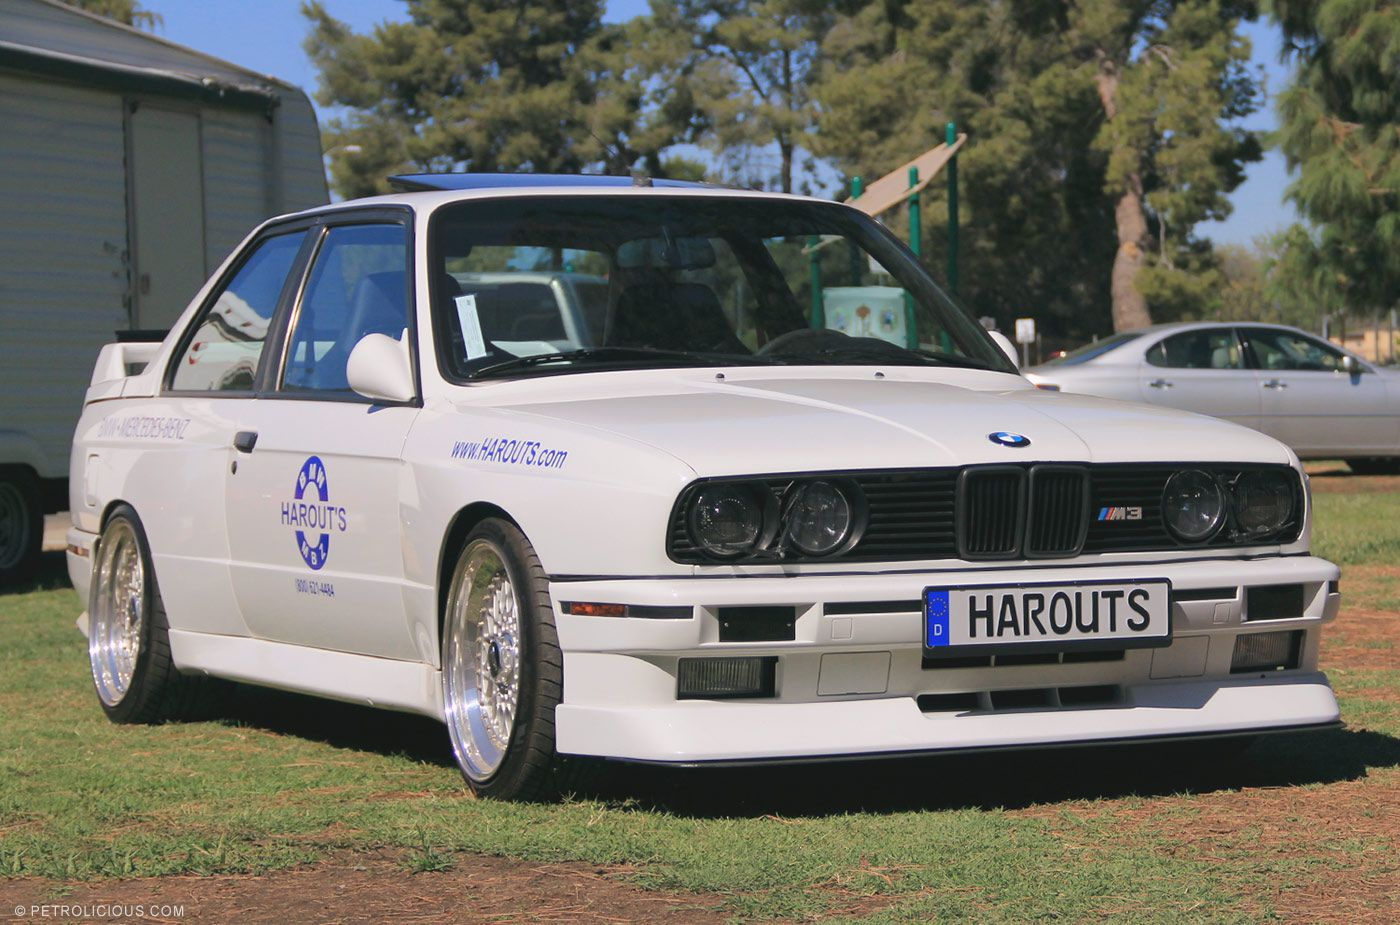 Throwbackthursday Harouts Bmw And Mbz Used Auto Parts E30 M3 At Last Year S Socal Vintagebmw Meet Pc Petrolicious Bmw E30 Bmw Bmw E30 M3